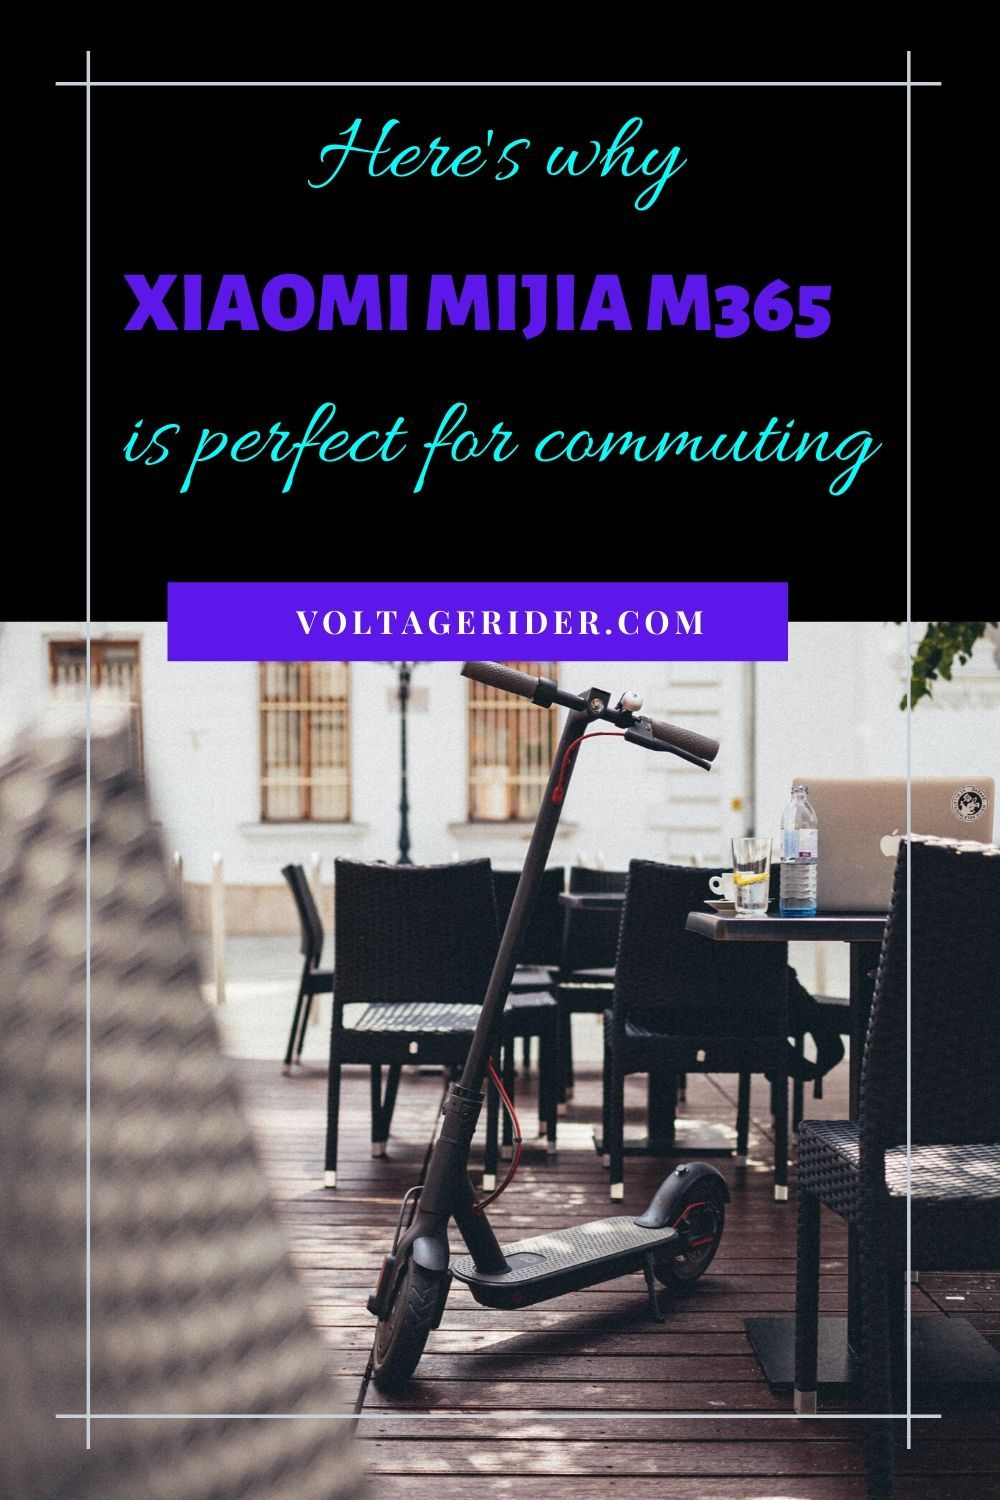 This is one of the best electric scooters for adults. It's cheap, reliable and nice-looking as well. Everything that average commuter needs. Here's everything about Xiaomi mijia m365 and all the features that m365 has on disposal. Get ready to fall in love!  #electricscooter #escooter #electricscooters #escooters #voltagerider #xioamim365 #mijiam365 #m365 #bestscooter #commuting #emobility #electricmobility #urbanareas #urbanmobility